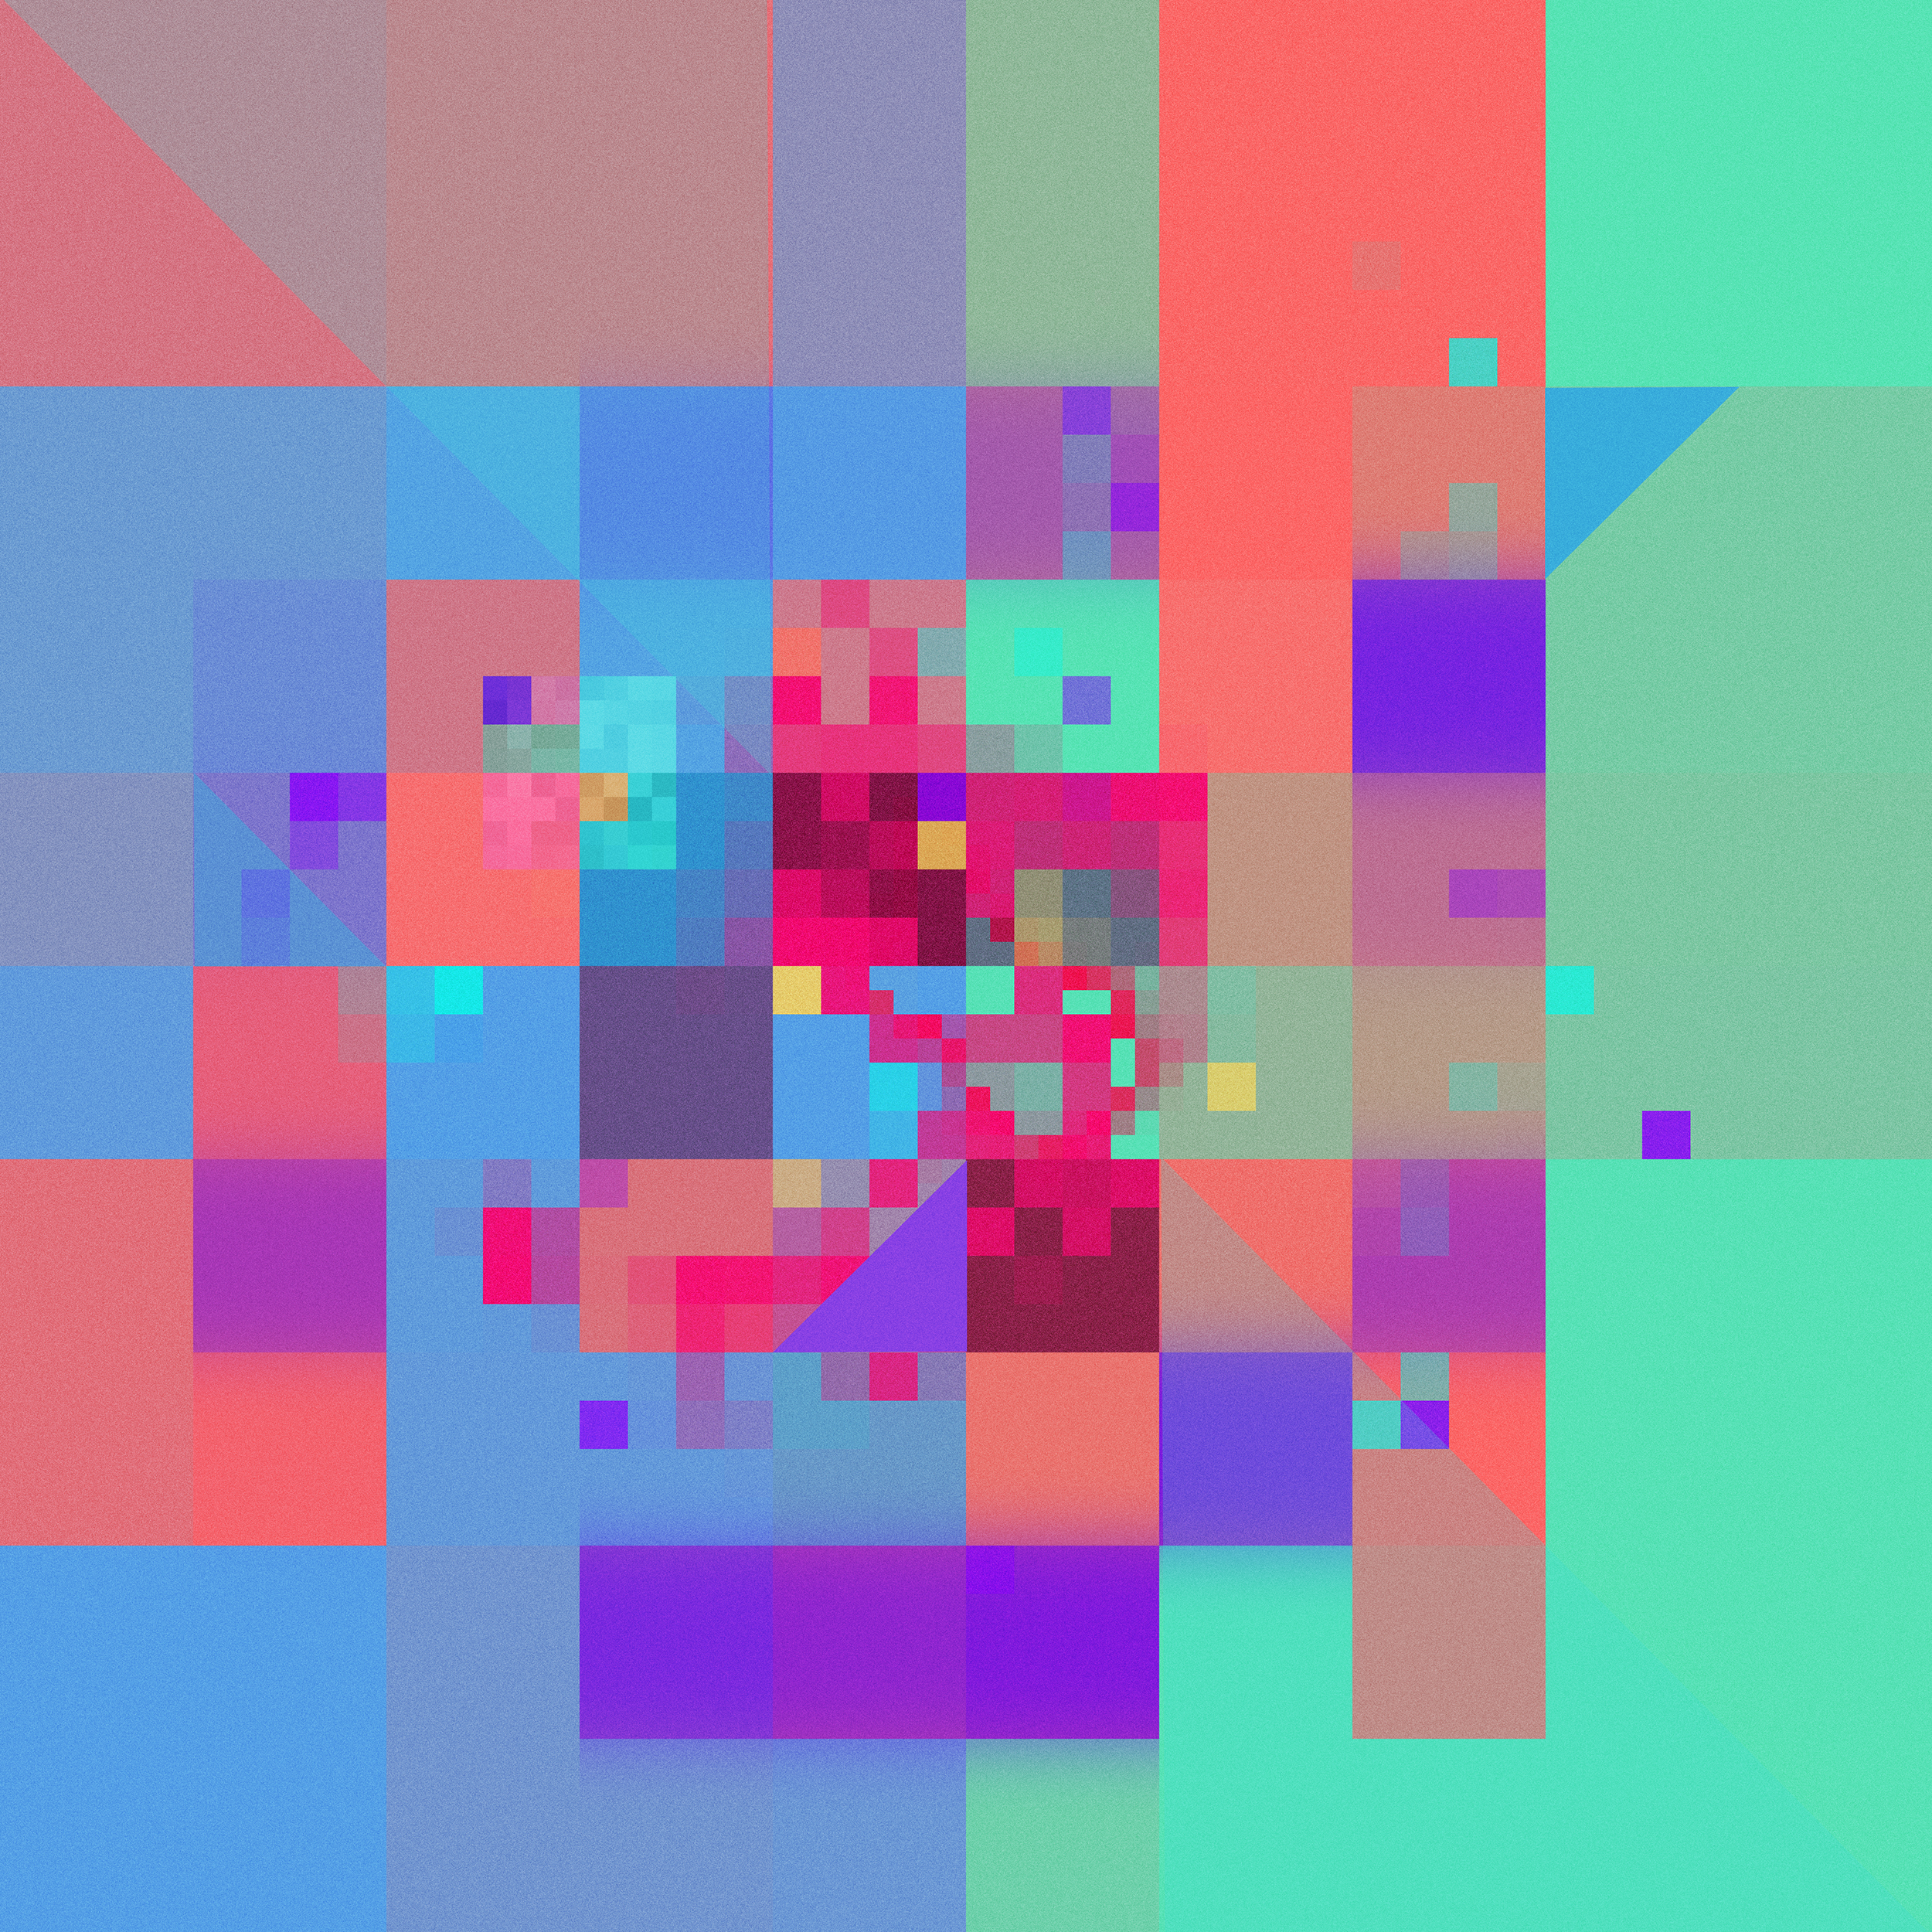 IBM_AI_Art_003_00196.jpg